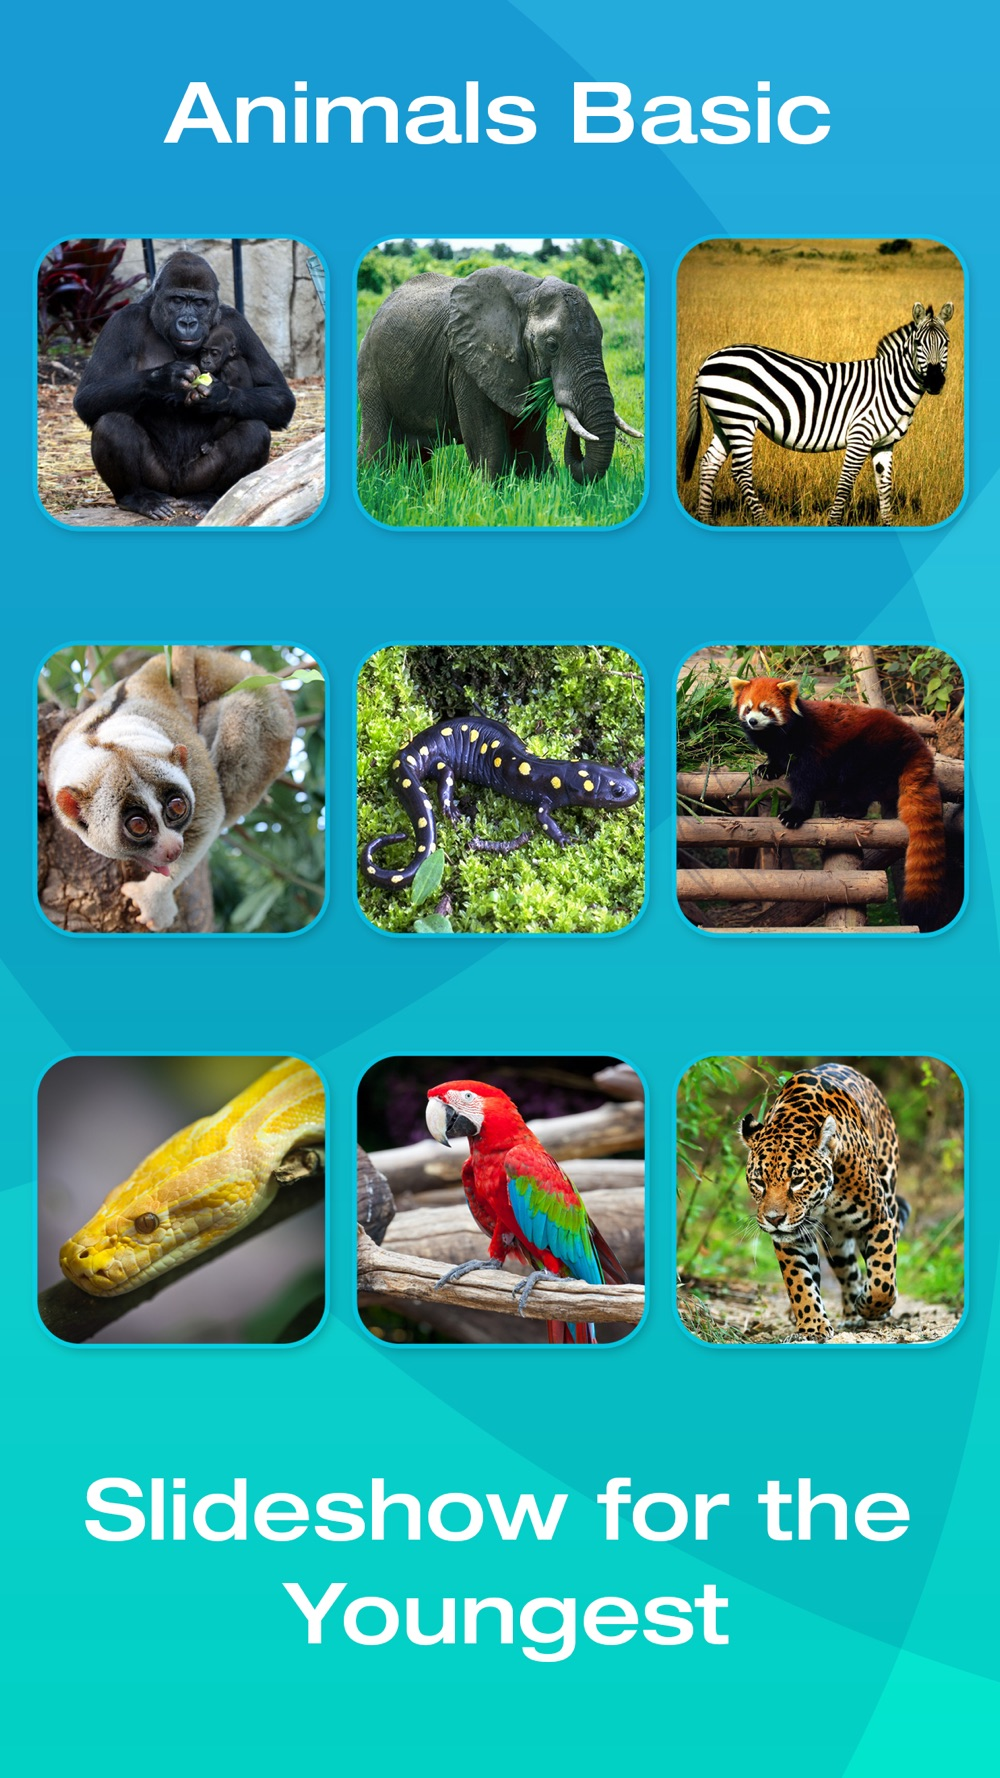 Safari and Jungle Animal Picture Flashcards for Babies, Toddlers or Preschool (Free) hack tool